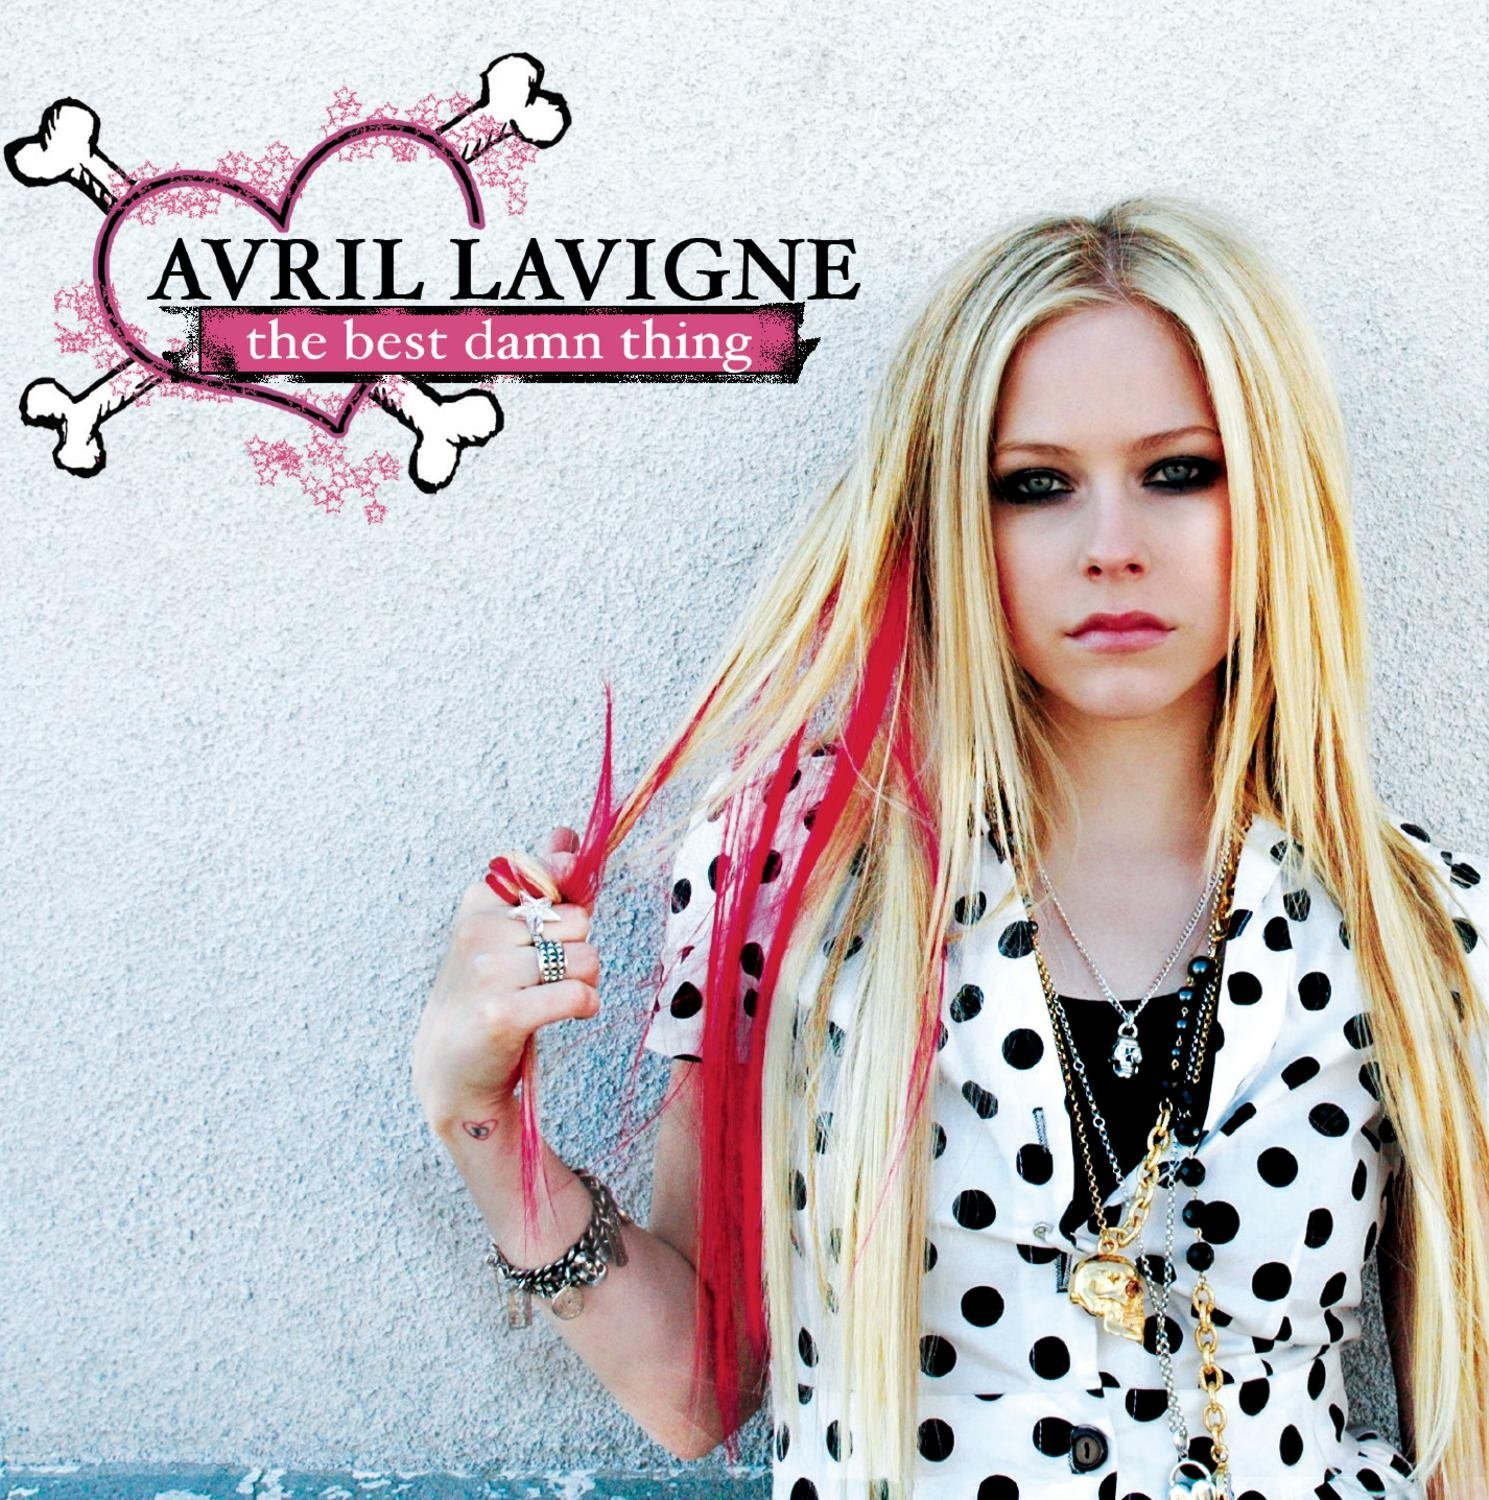 From The Record Crate Avril Lavigne The Best Damn Thing 2007 The Young Folks